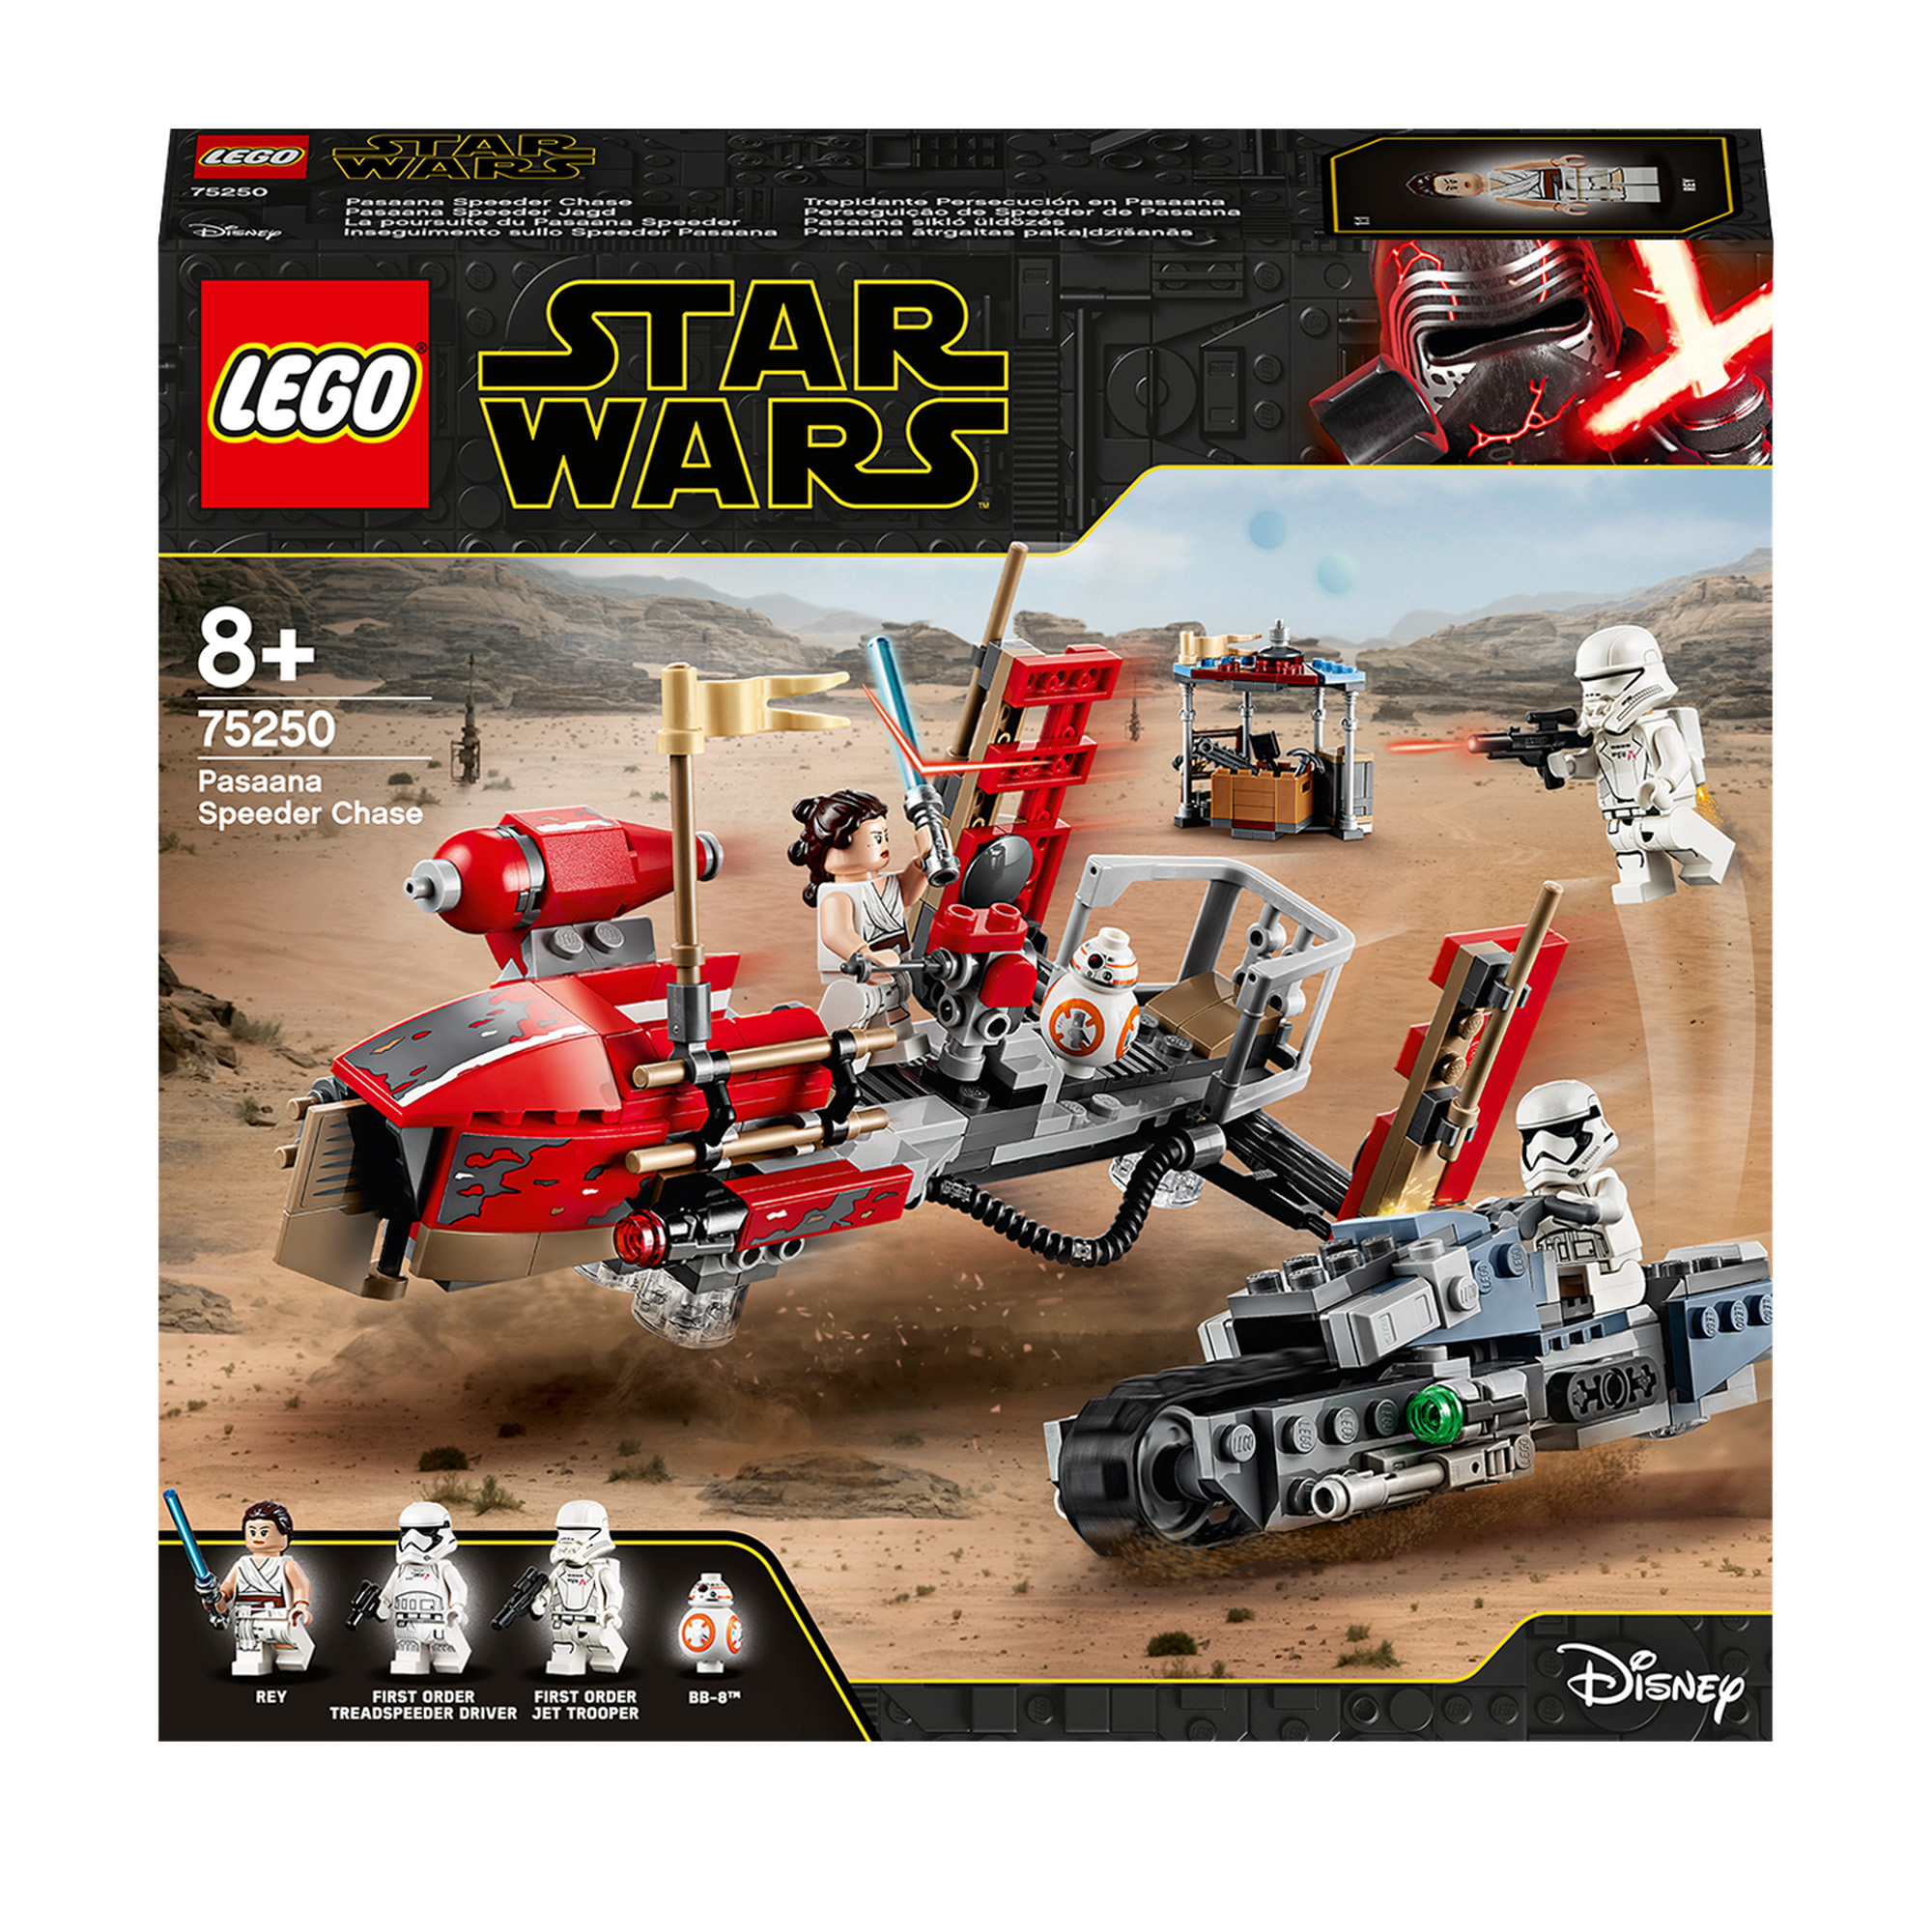 Picture of LEGO Star Wars Pasaana Speeder Chase 75250